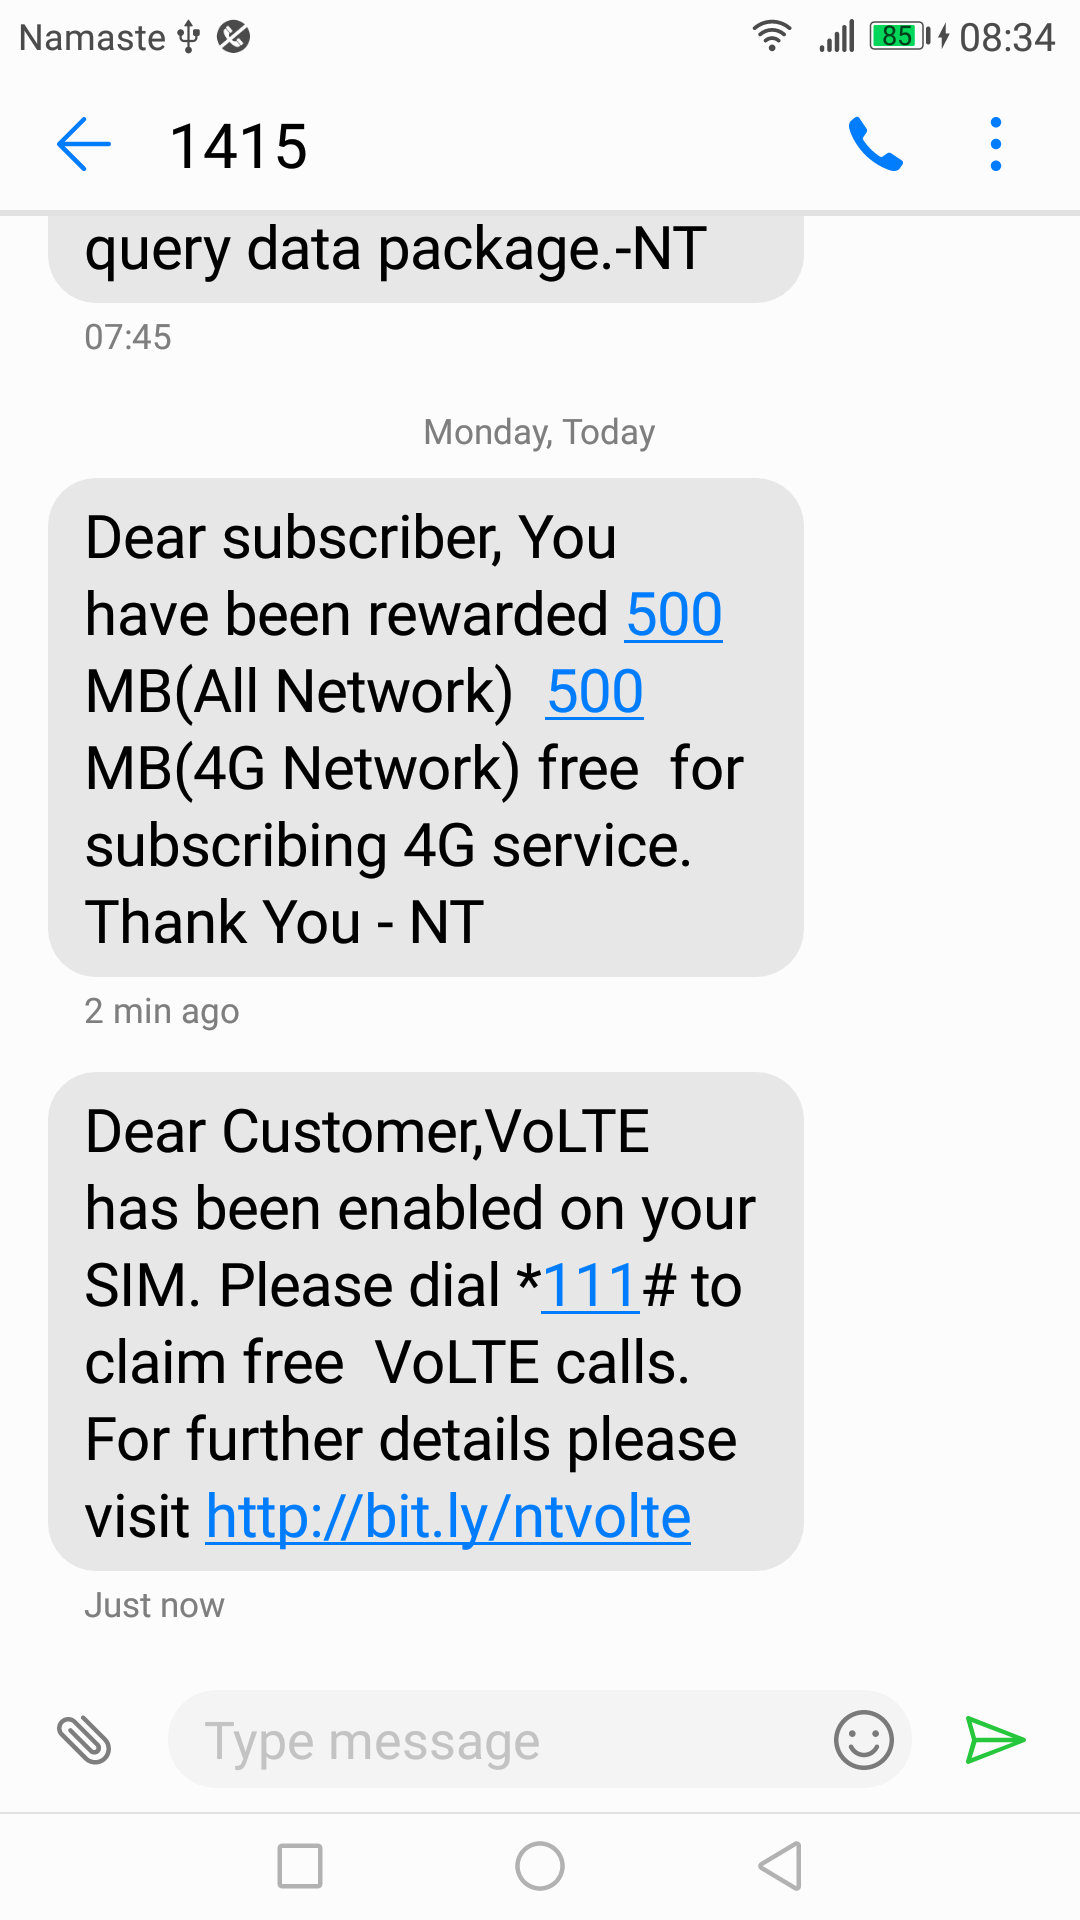 VoLTE enabled in NT SIM benefits